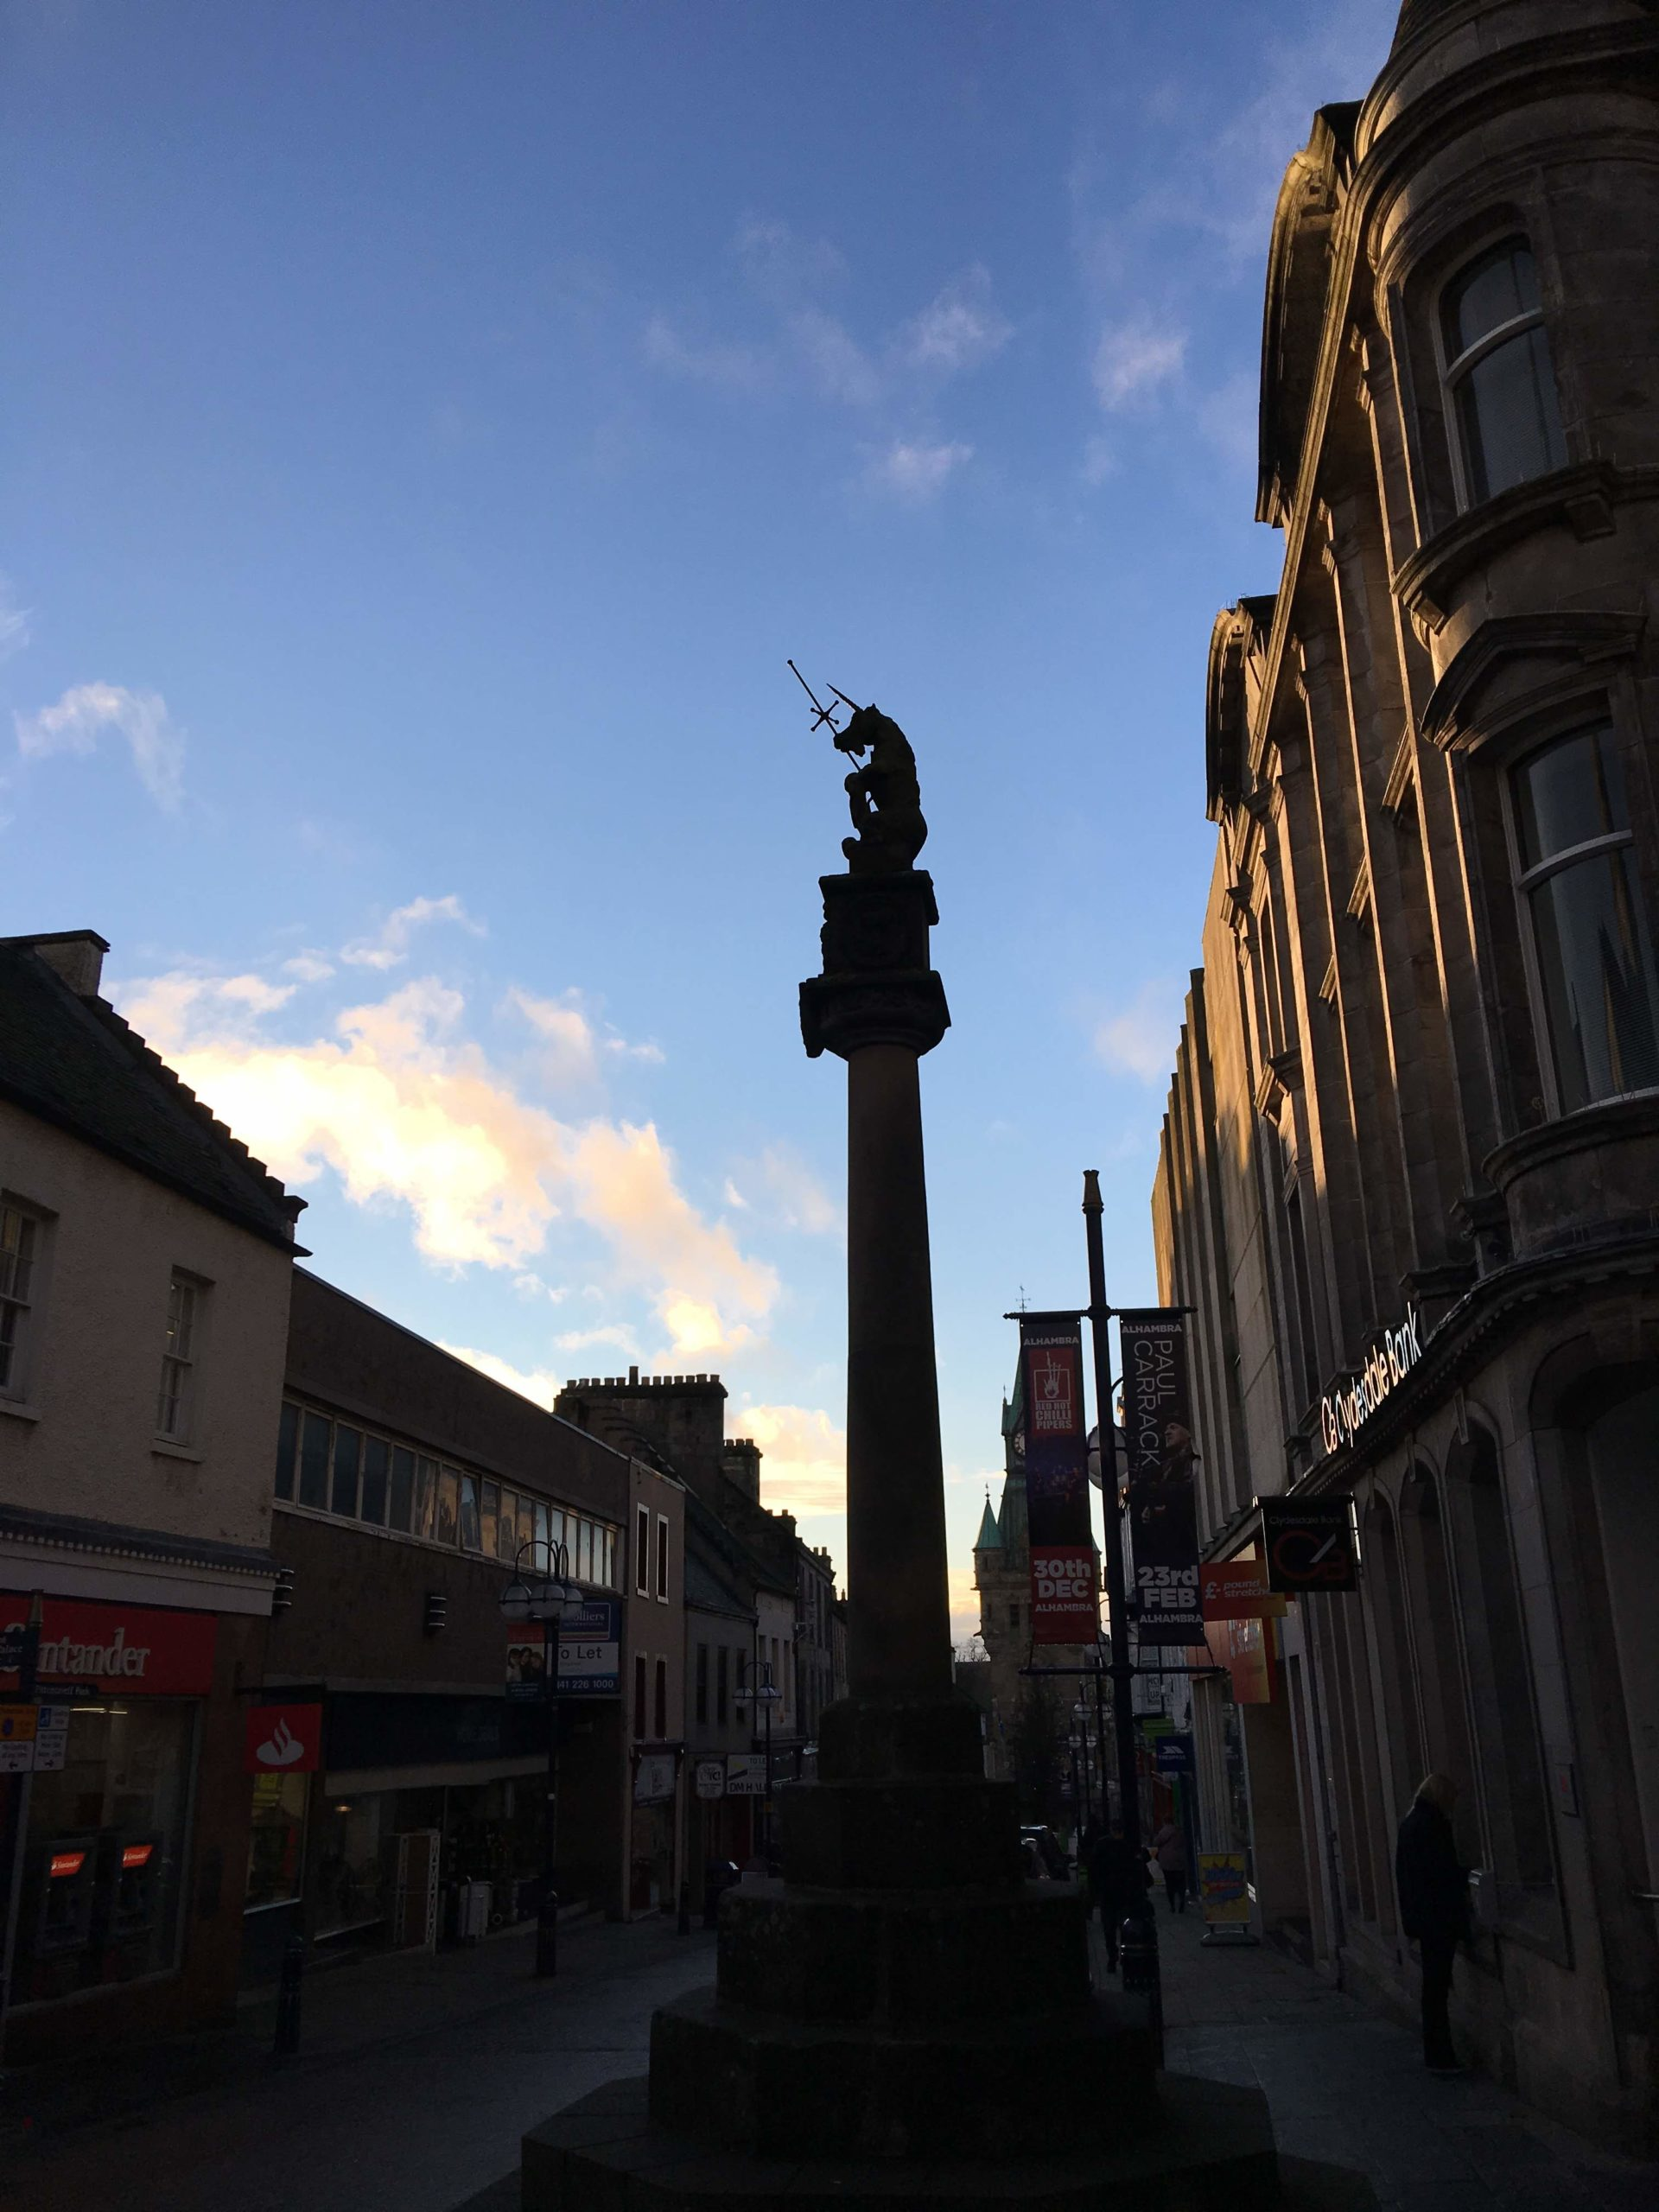 Dunfermline's Mercat cross topped with unicorn and sceptre in afternoon shade against a blue sky background.